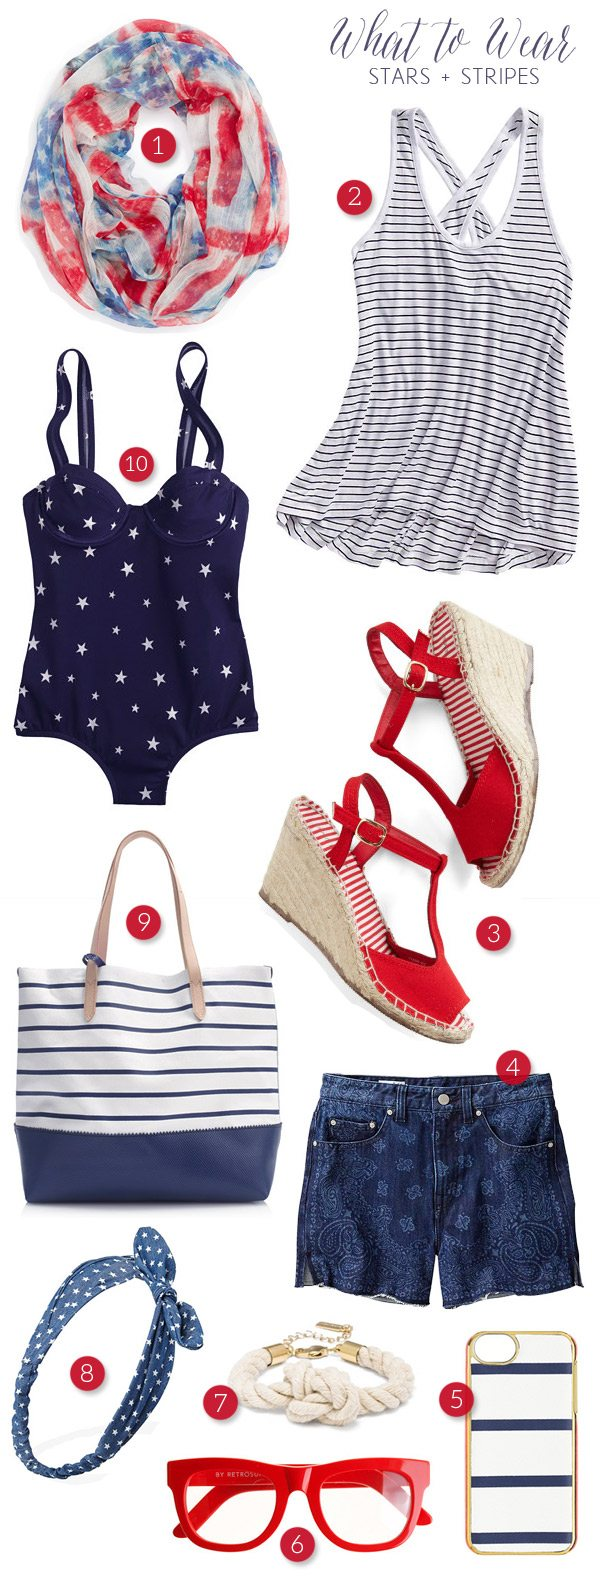 Stars and stripes fashion for the 4th of July